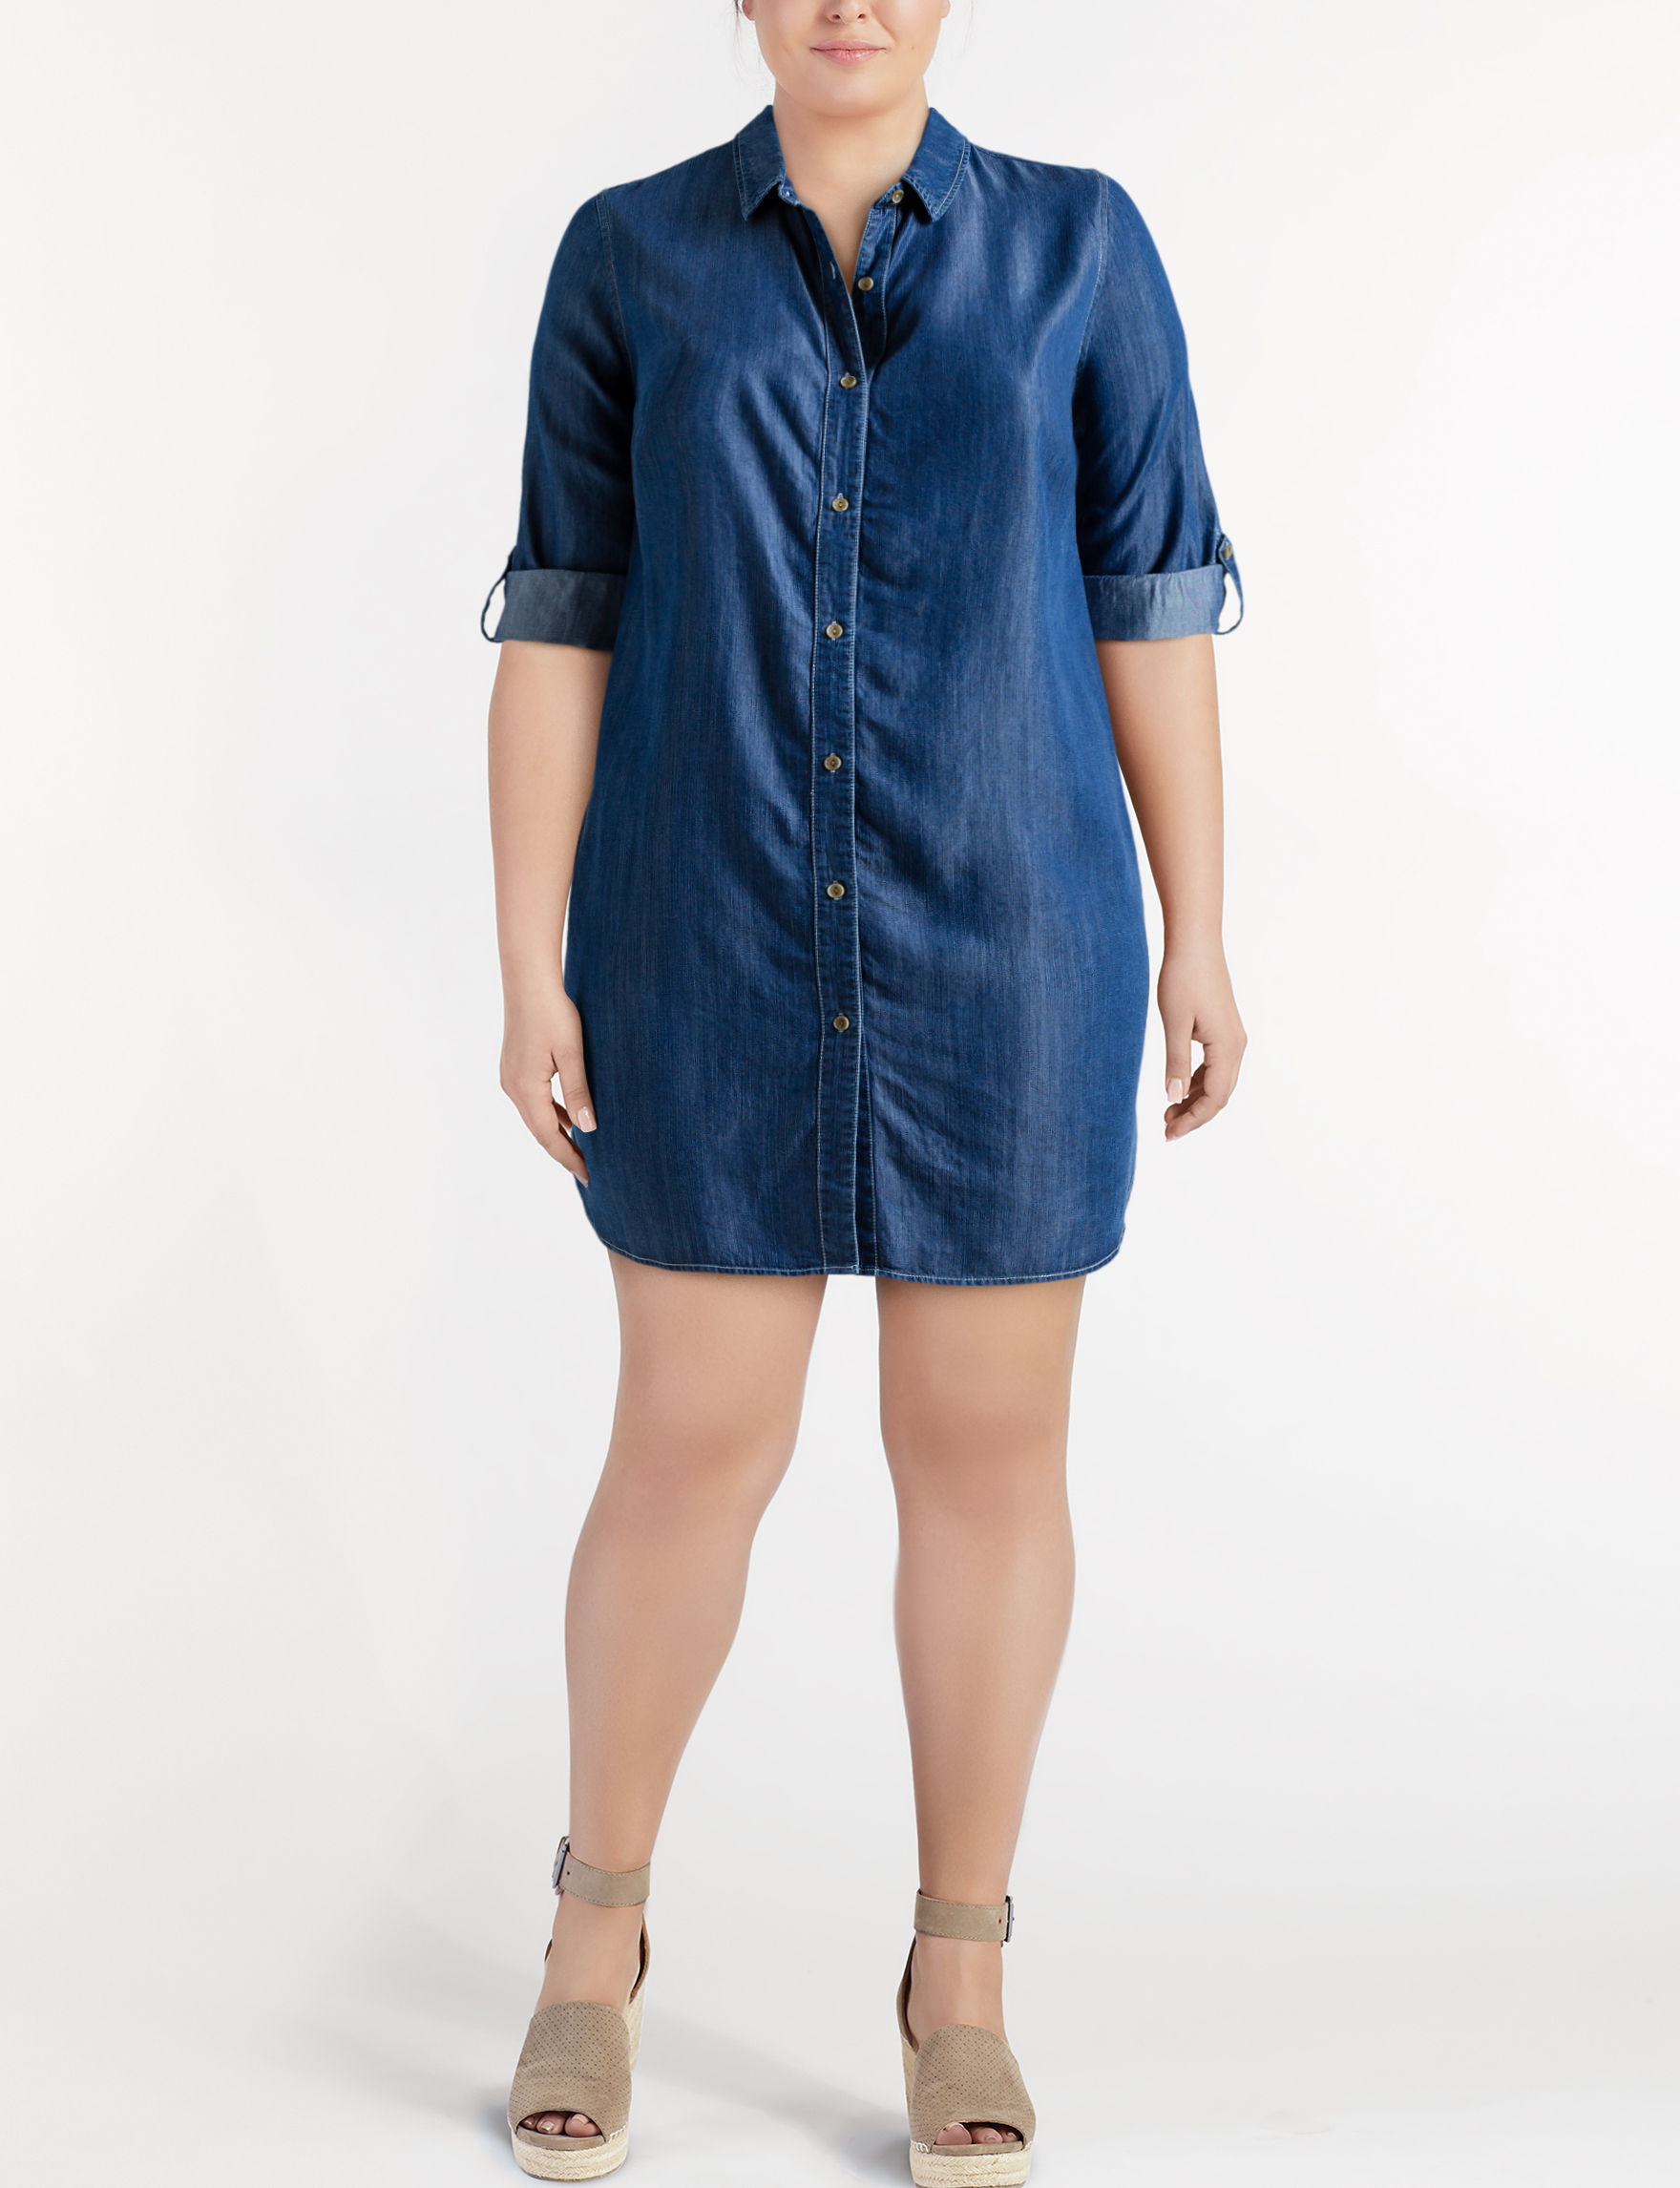 JM Studio Denim Everyday & Casual Shirt Dresses